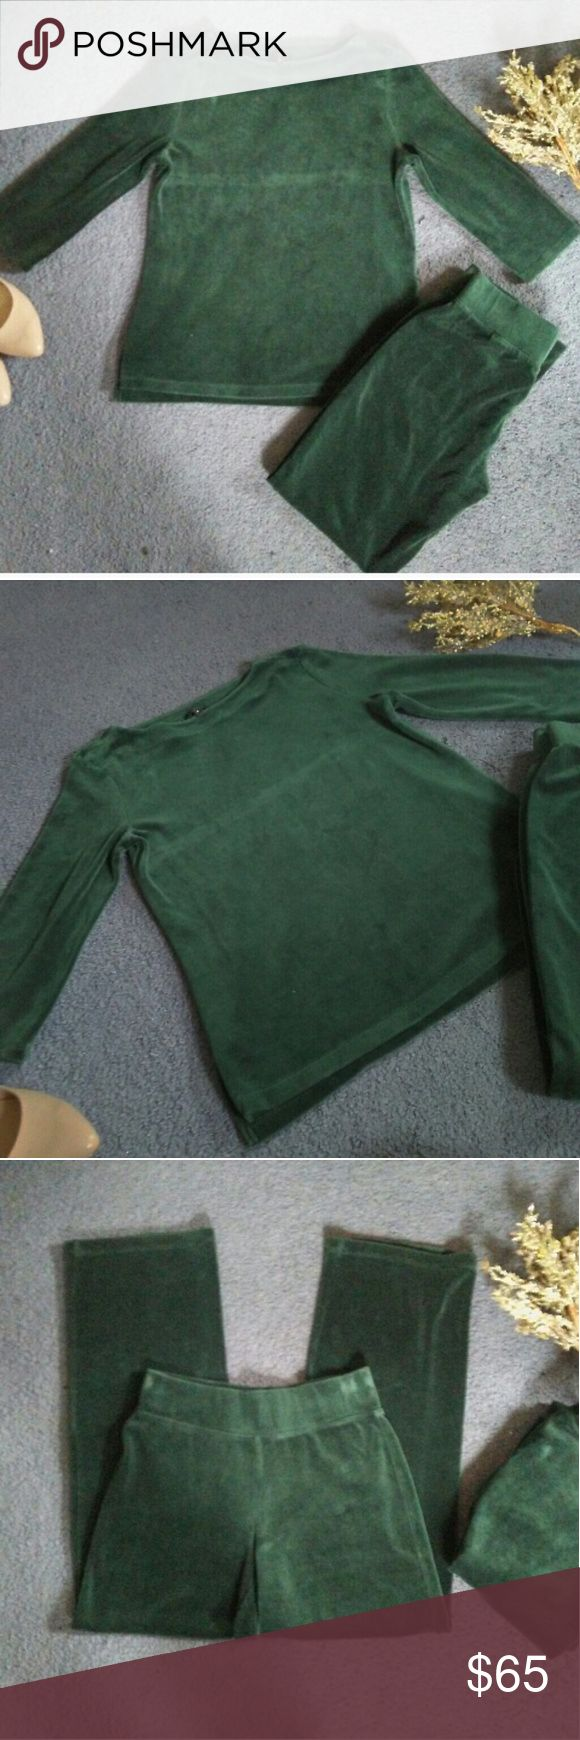 """? talbots loungewear set ? Talbots 2 piece velour loungewear set. Forest green. Size Small Petite -  Measurements: Shirt - Bust 18"""" & Length 23"""" with 2"""" slit on side bottom hem. Pants inseam 28"""" with elastic waistband  Brand new, never worn, recent purchase. Selling for friend. Talbots Pants Jumpsuits & Rompers"""